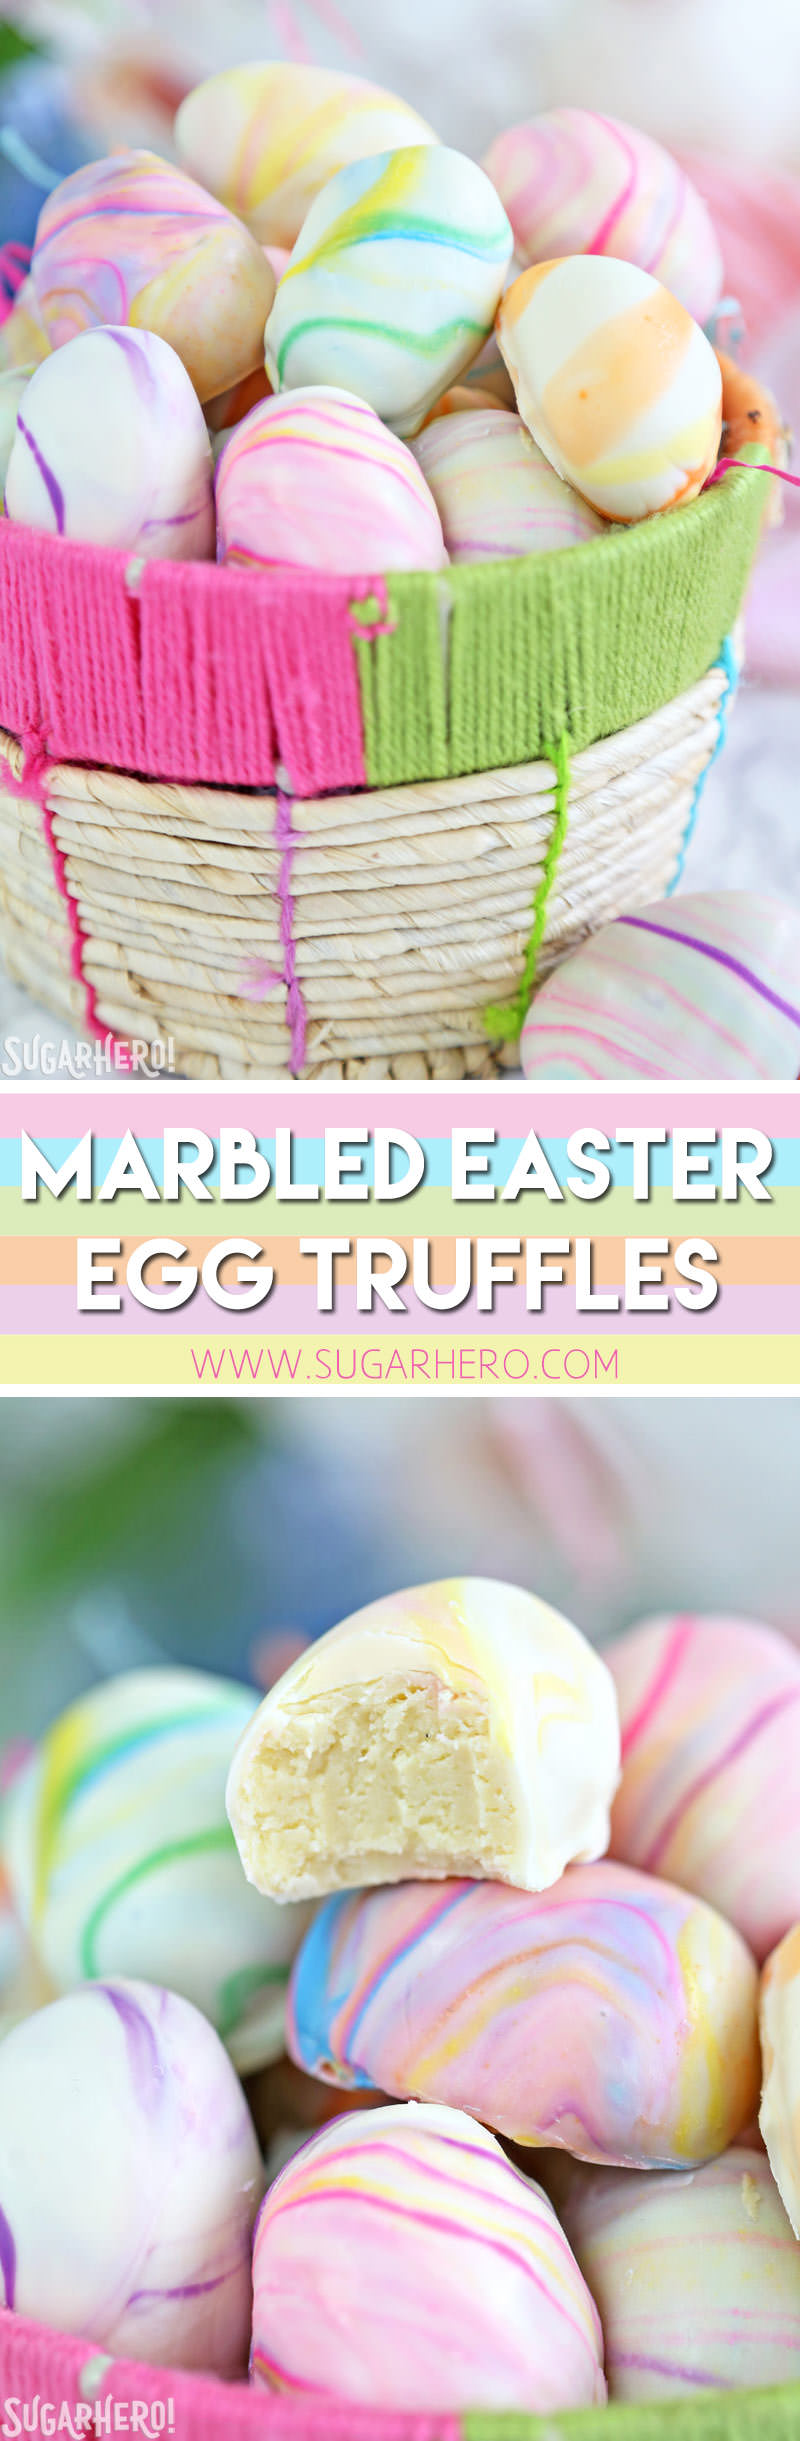 Marbled Easter Egg Truffles - homemade Easter candy! White chocolate truffles with a pretty pastel swirl | From SugarHero.com